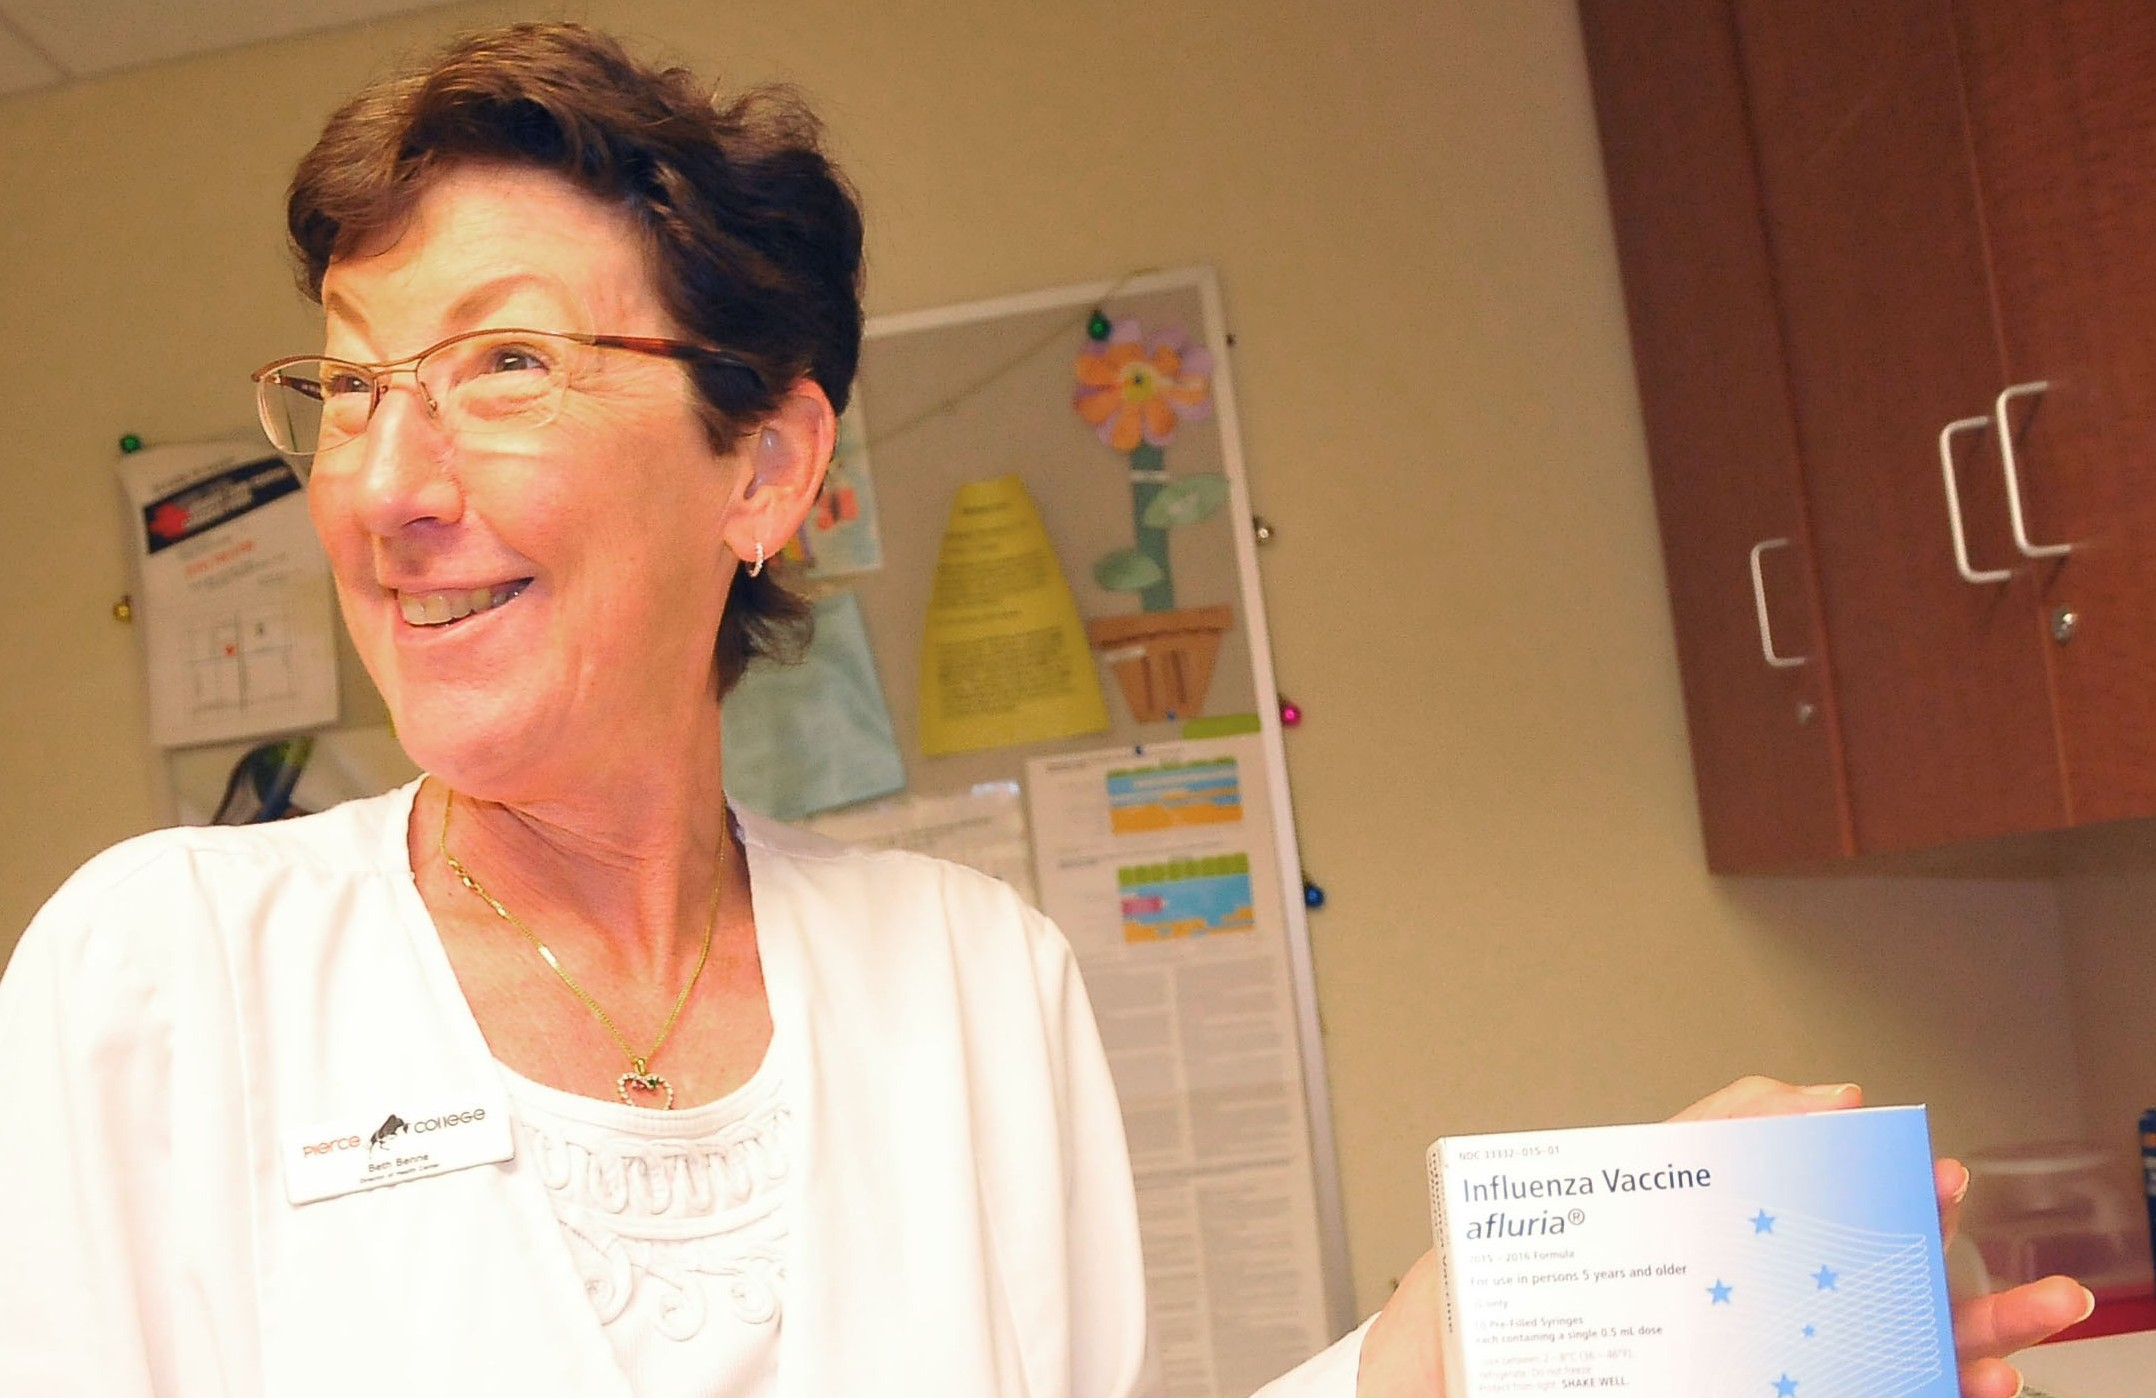 Flu vaccines now available at health center